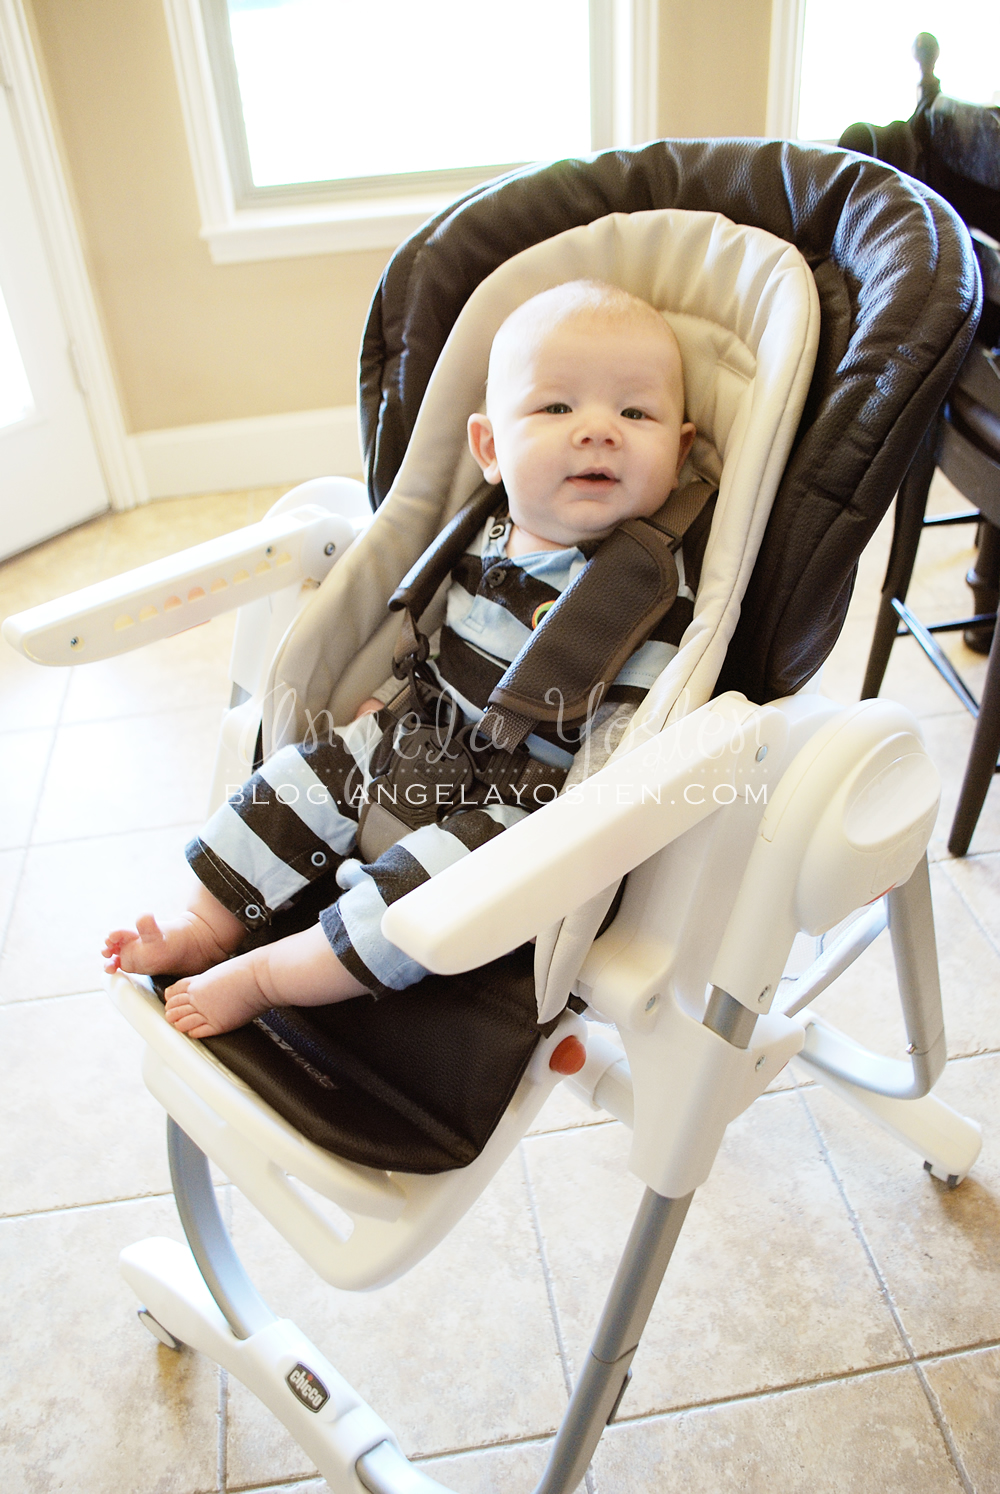 Less bulky and you can instantly get the food mess away from baby without having to remove him from the chair.  sc 1 st  Angela Yosten & Angela Yosten: MOM Reviews - Chicco Polly Magic Highchair